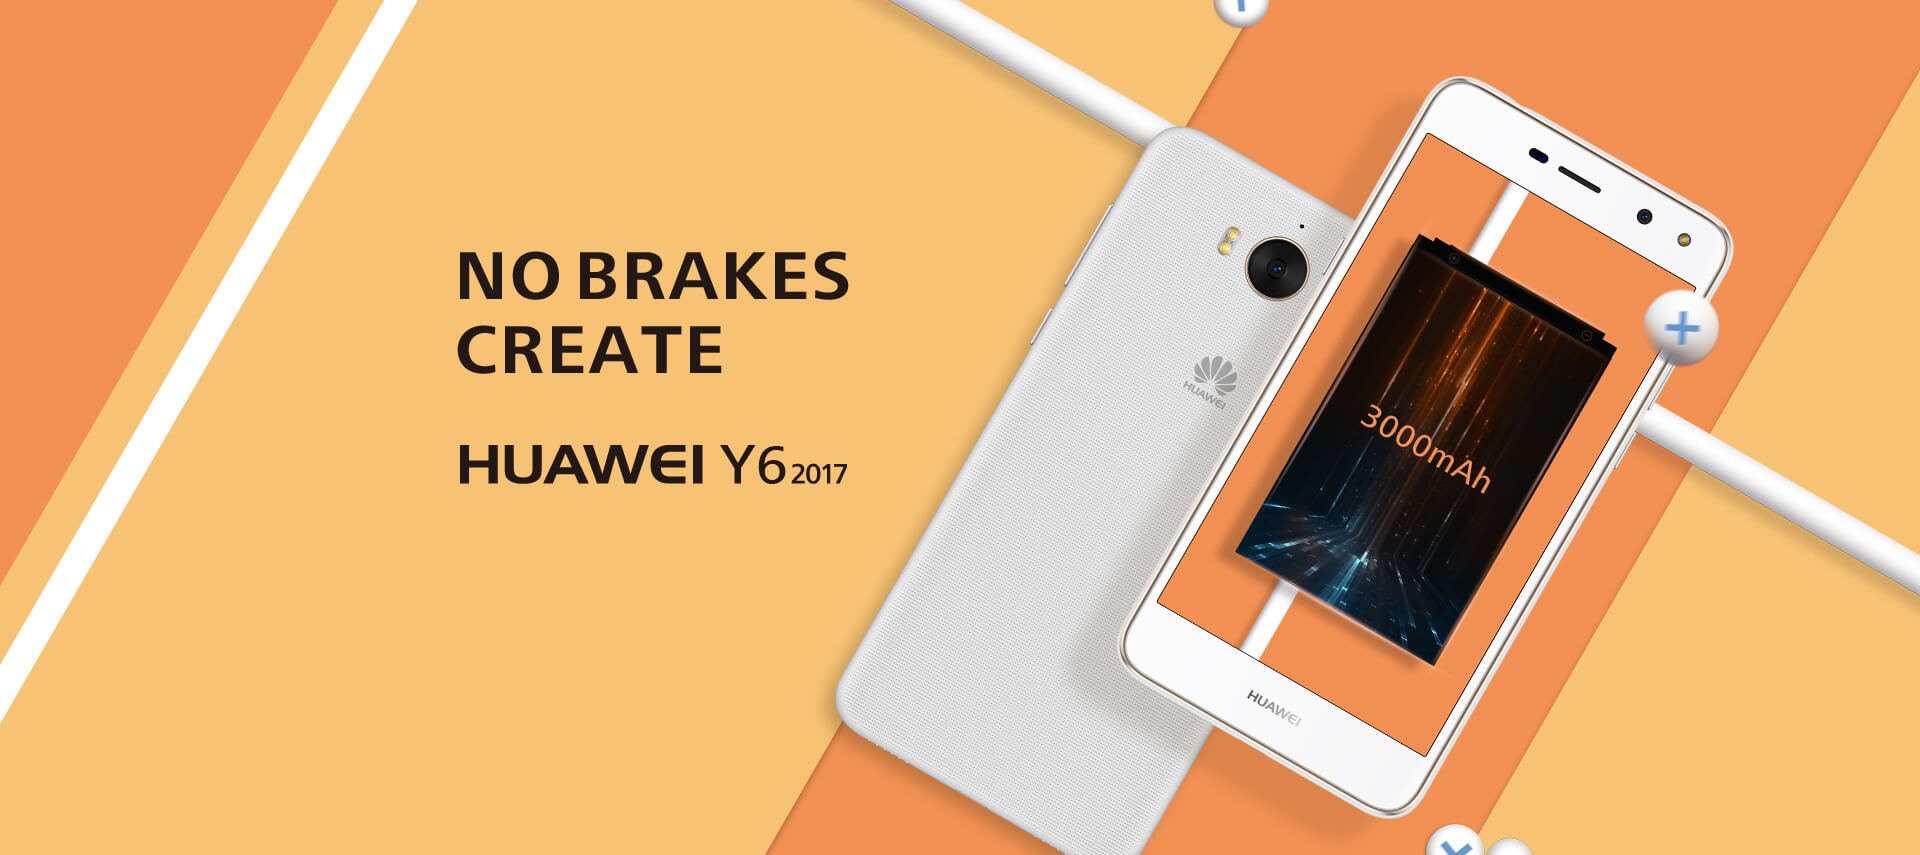 Huawei Y6 2017 Android Smartphone